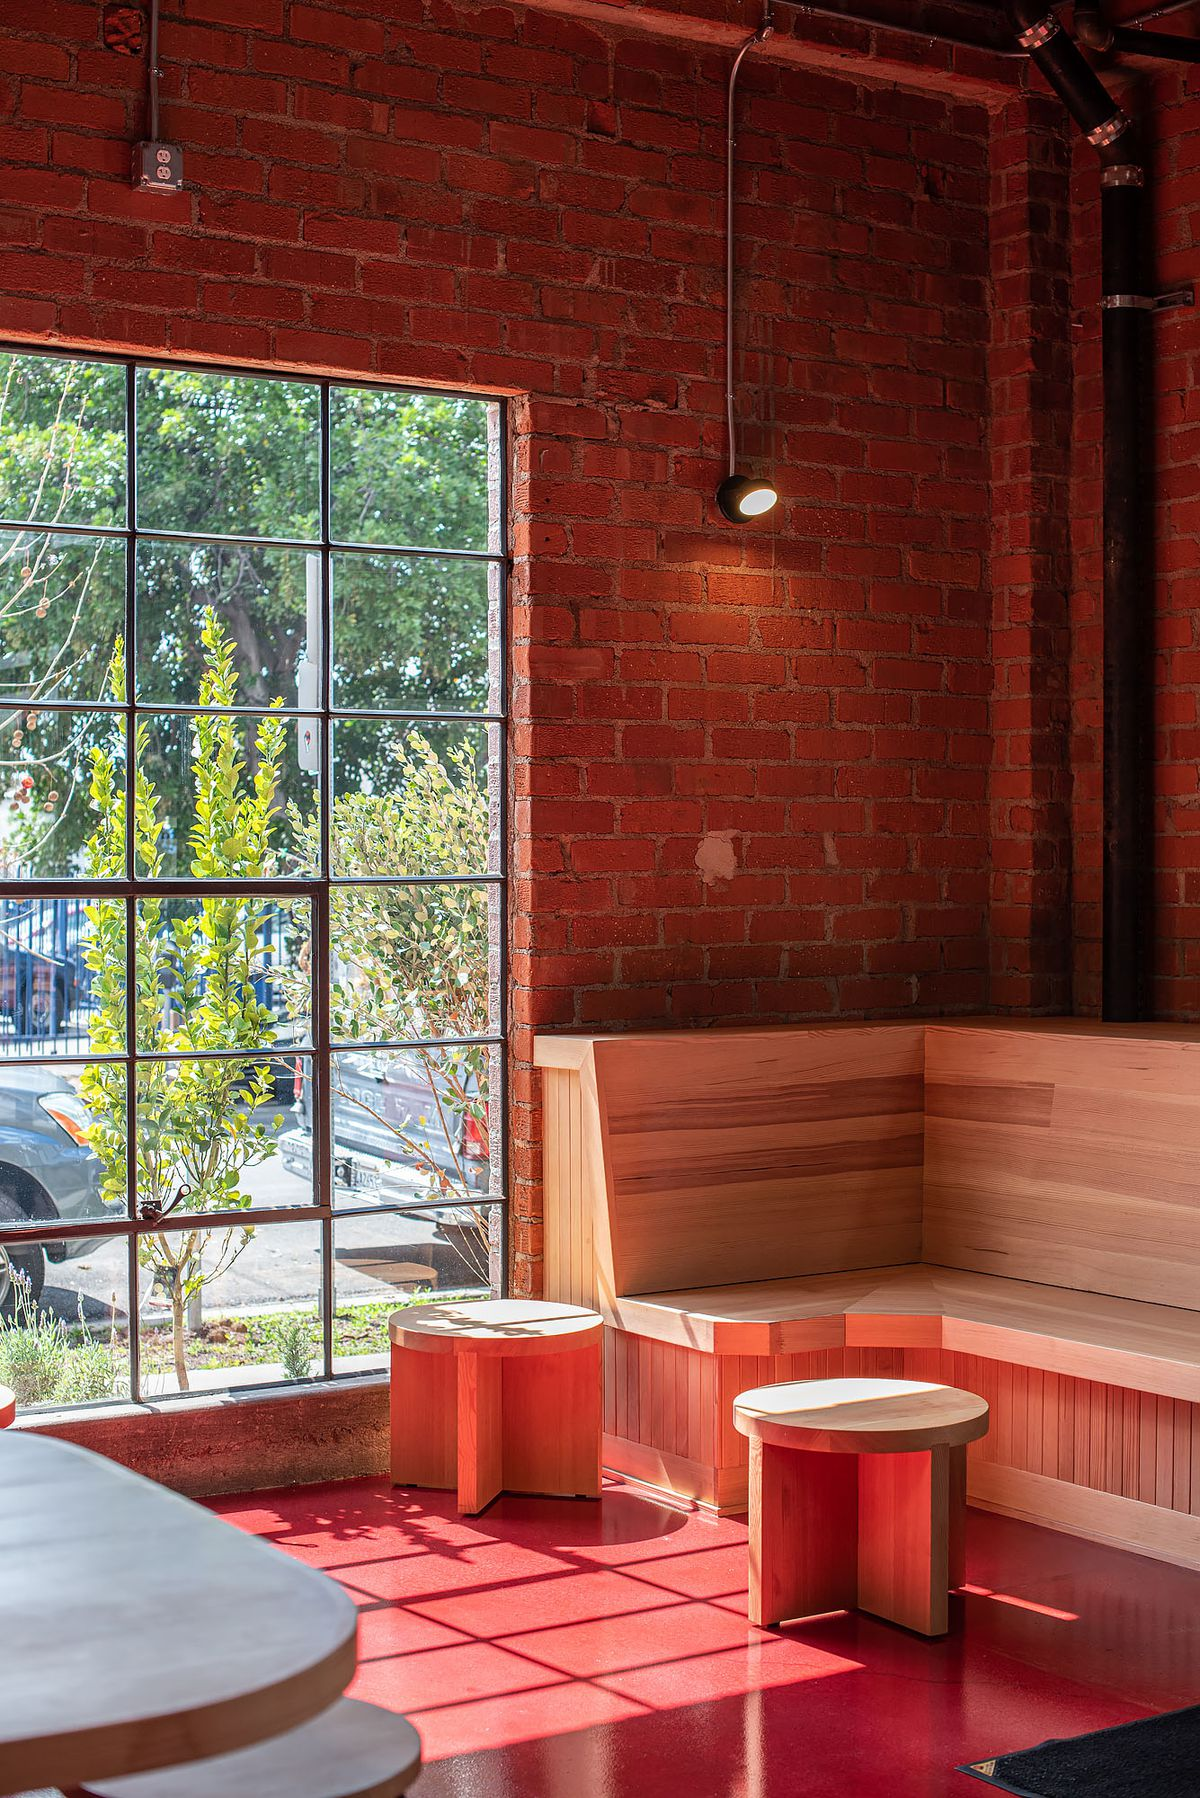 A big window and wooden tables inside of a new cafe.